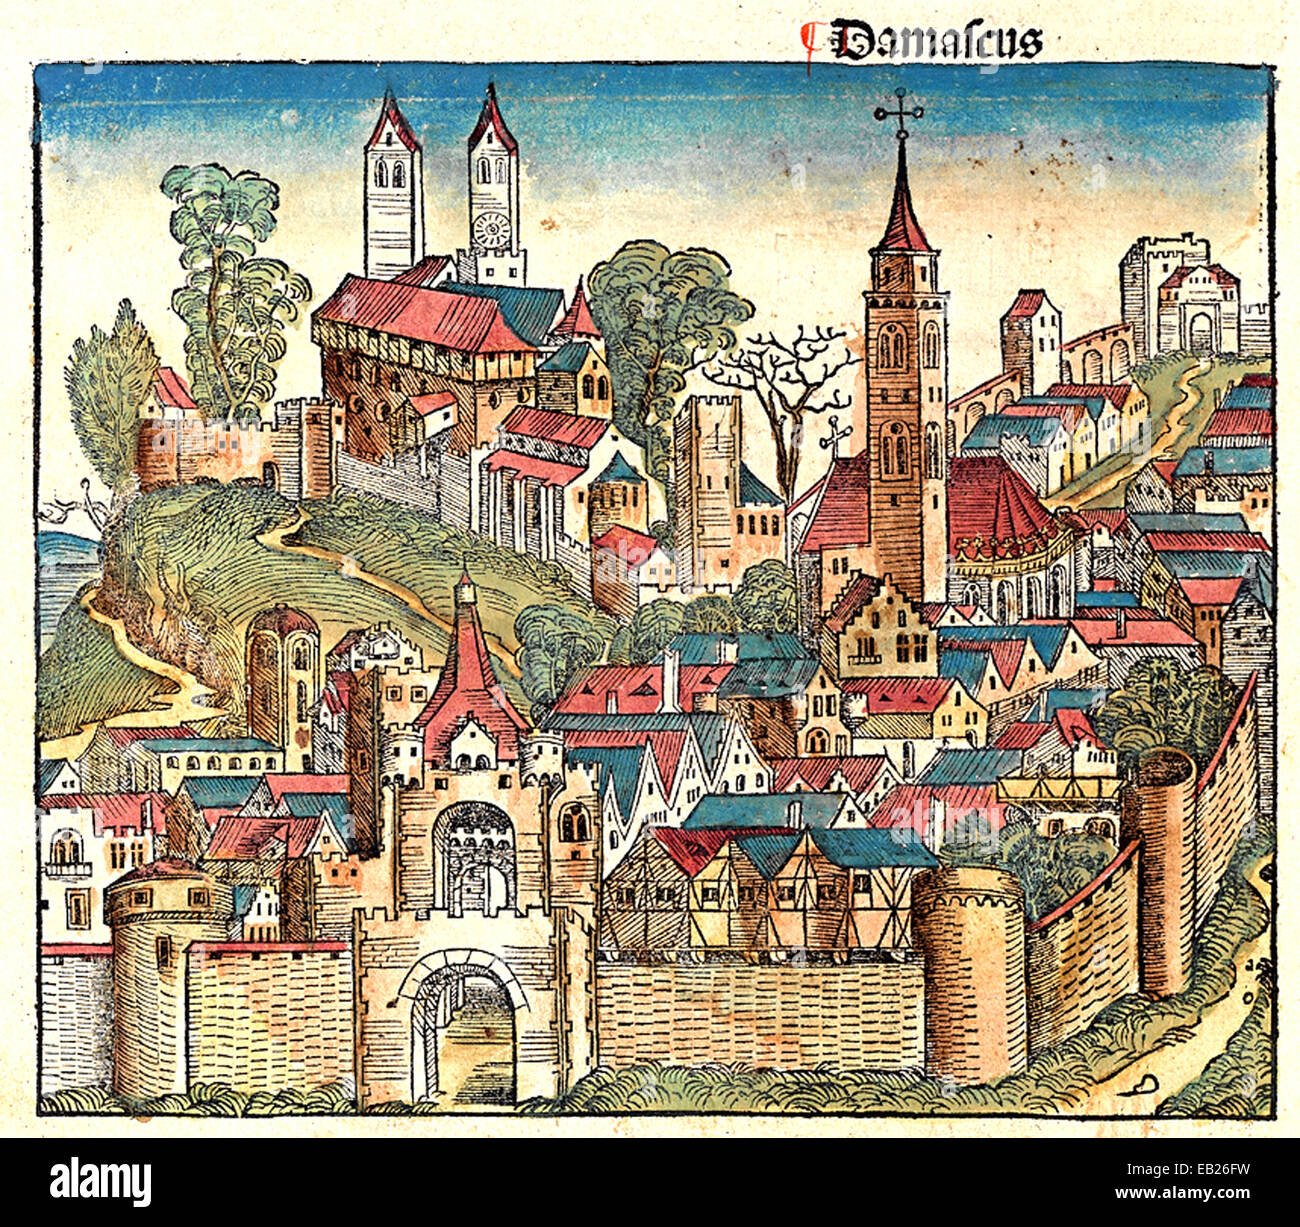 Ancient Medieval Literature: Damascus As Shown In The Book